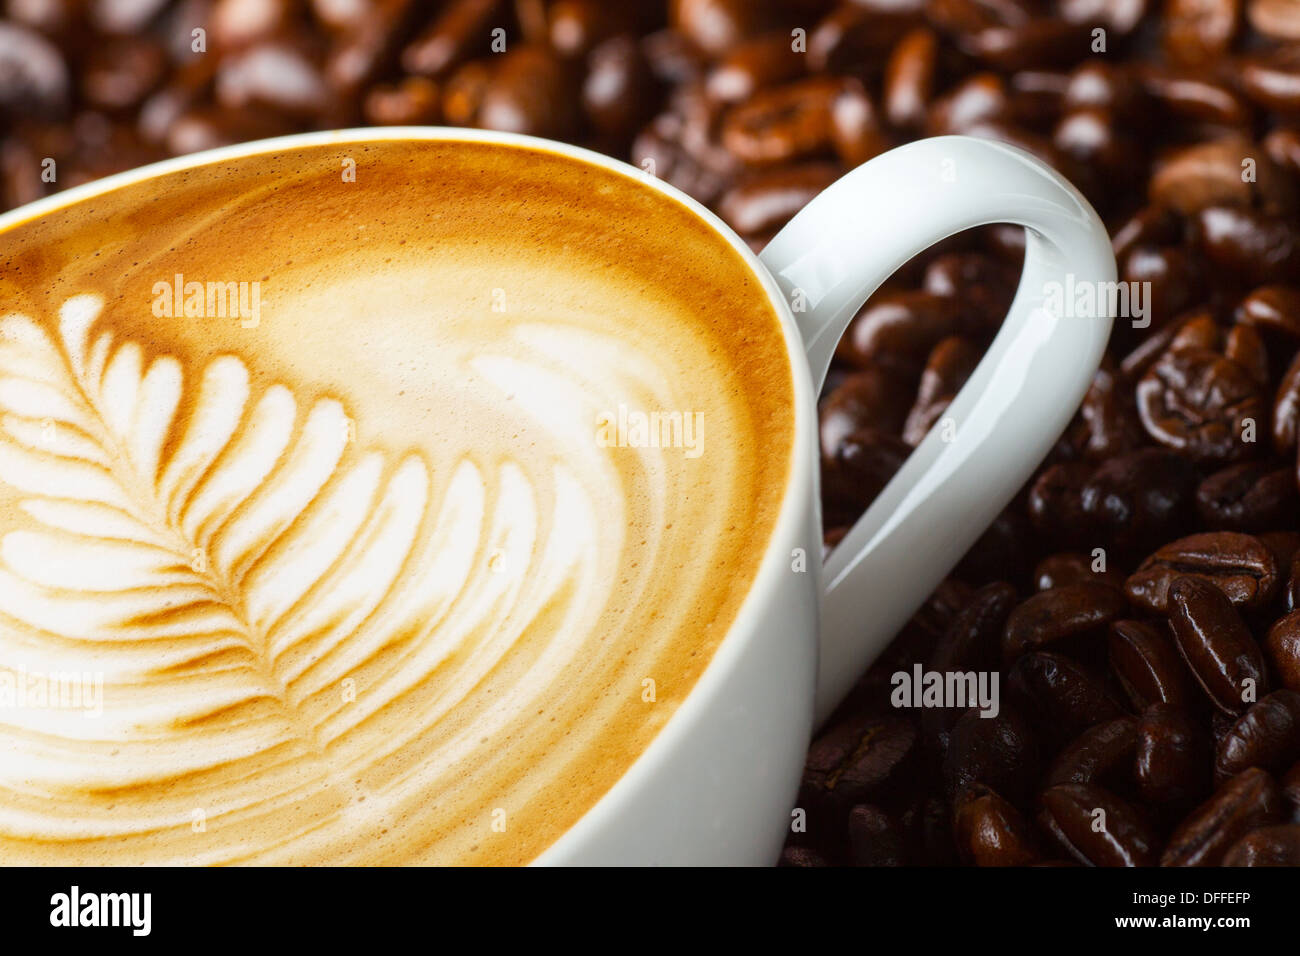 Latte art, coffee in coffee beans background - Stock Image